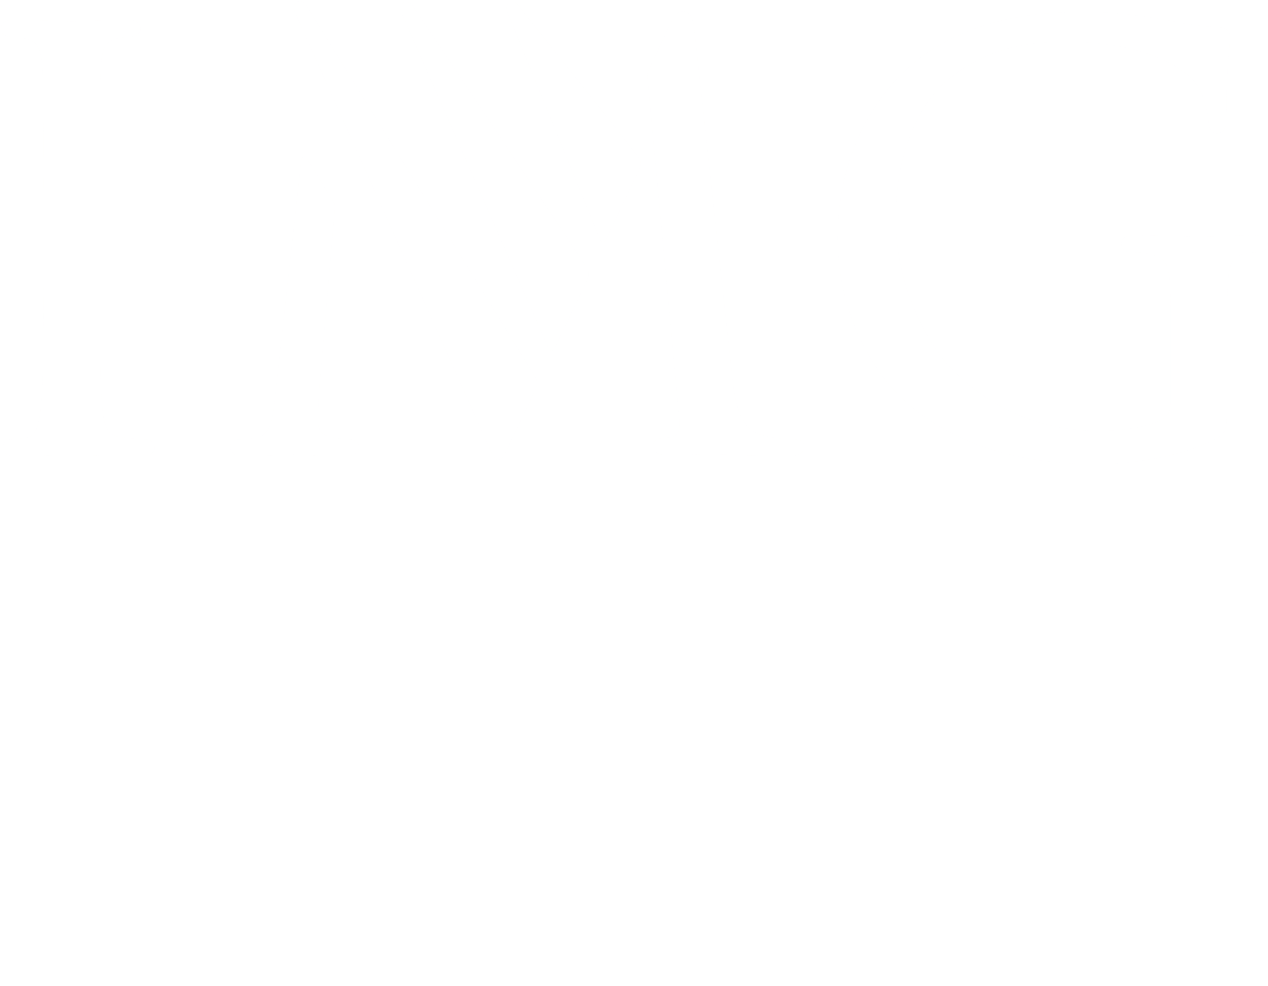 IMG Models Los Angeles